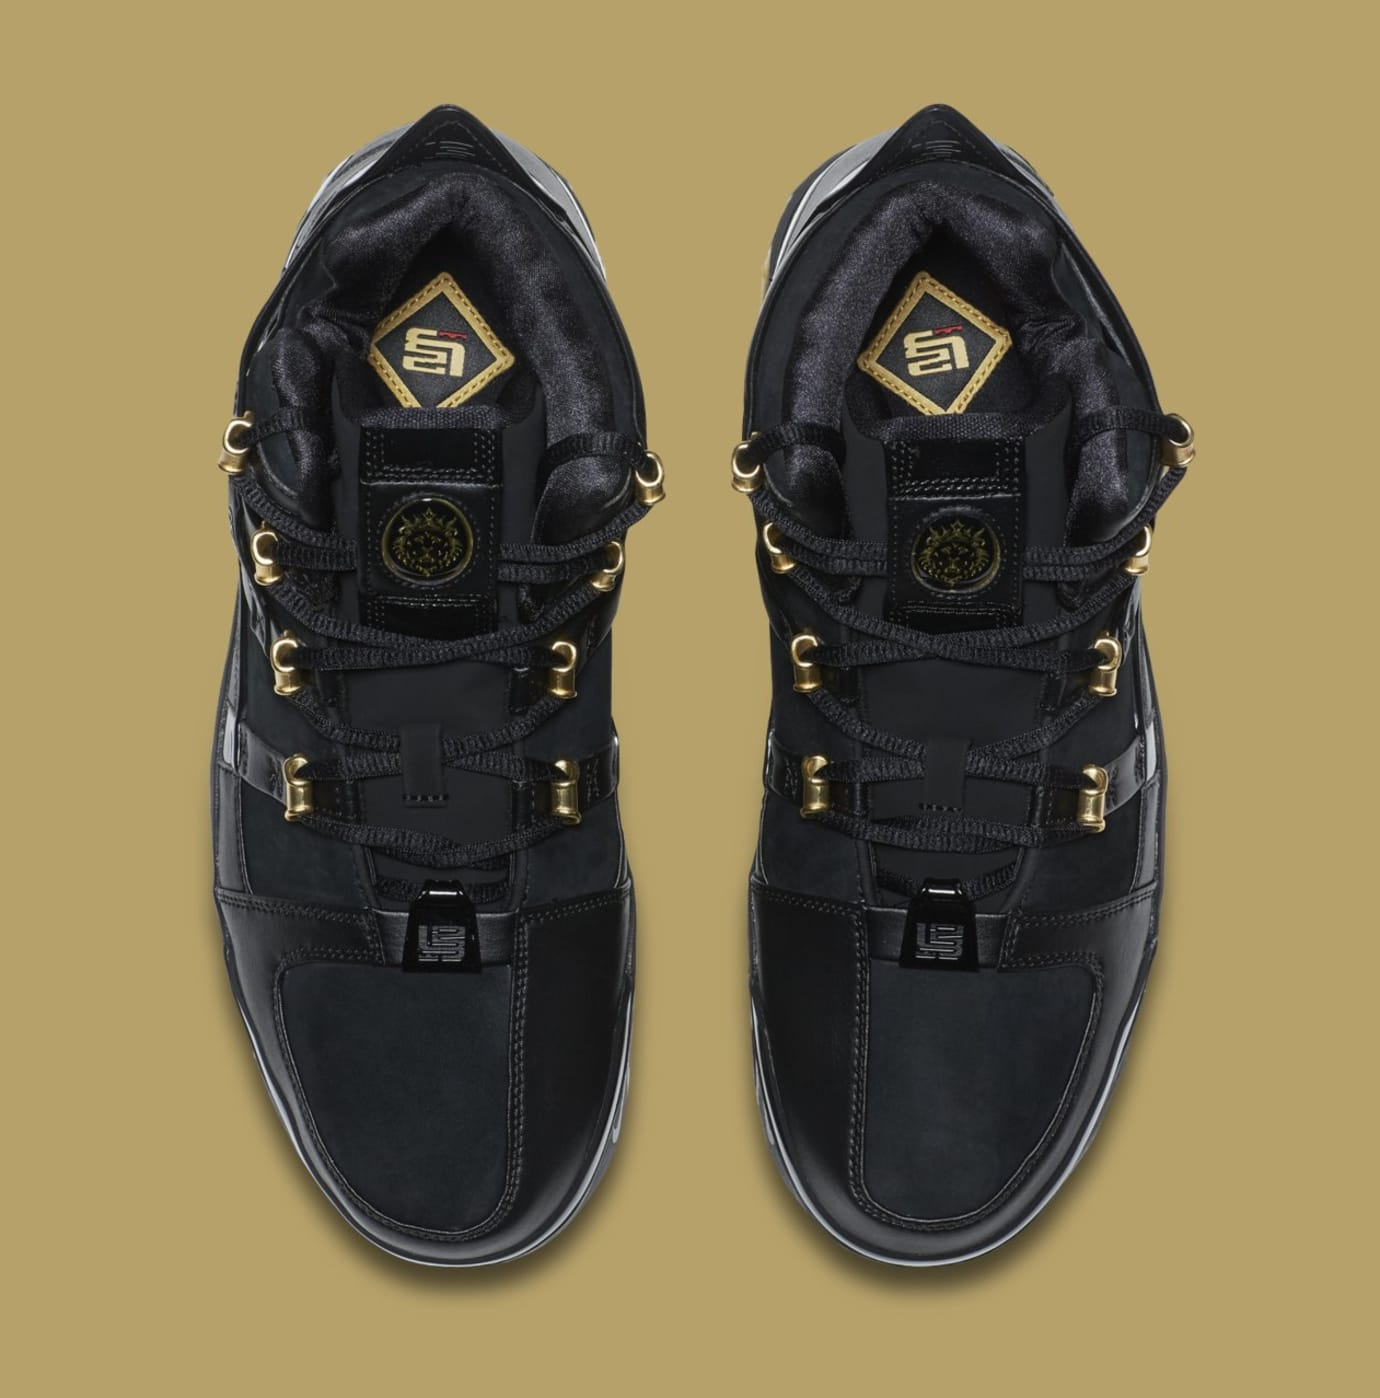 Image via Nike Nike LeBron 3  Black Gold  Retro AO2434-001 (Top) 2414c8dc5